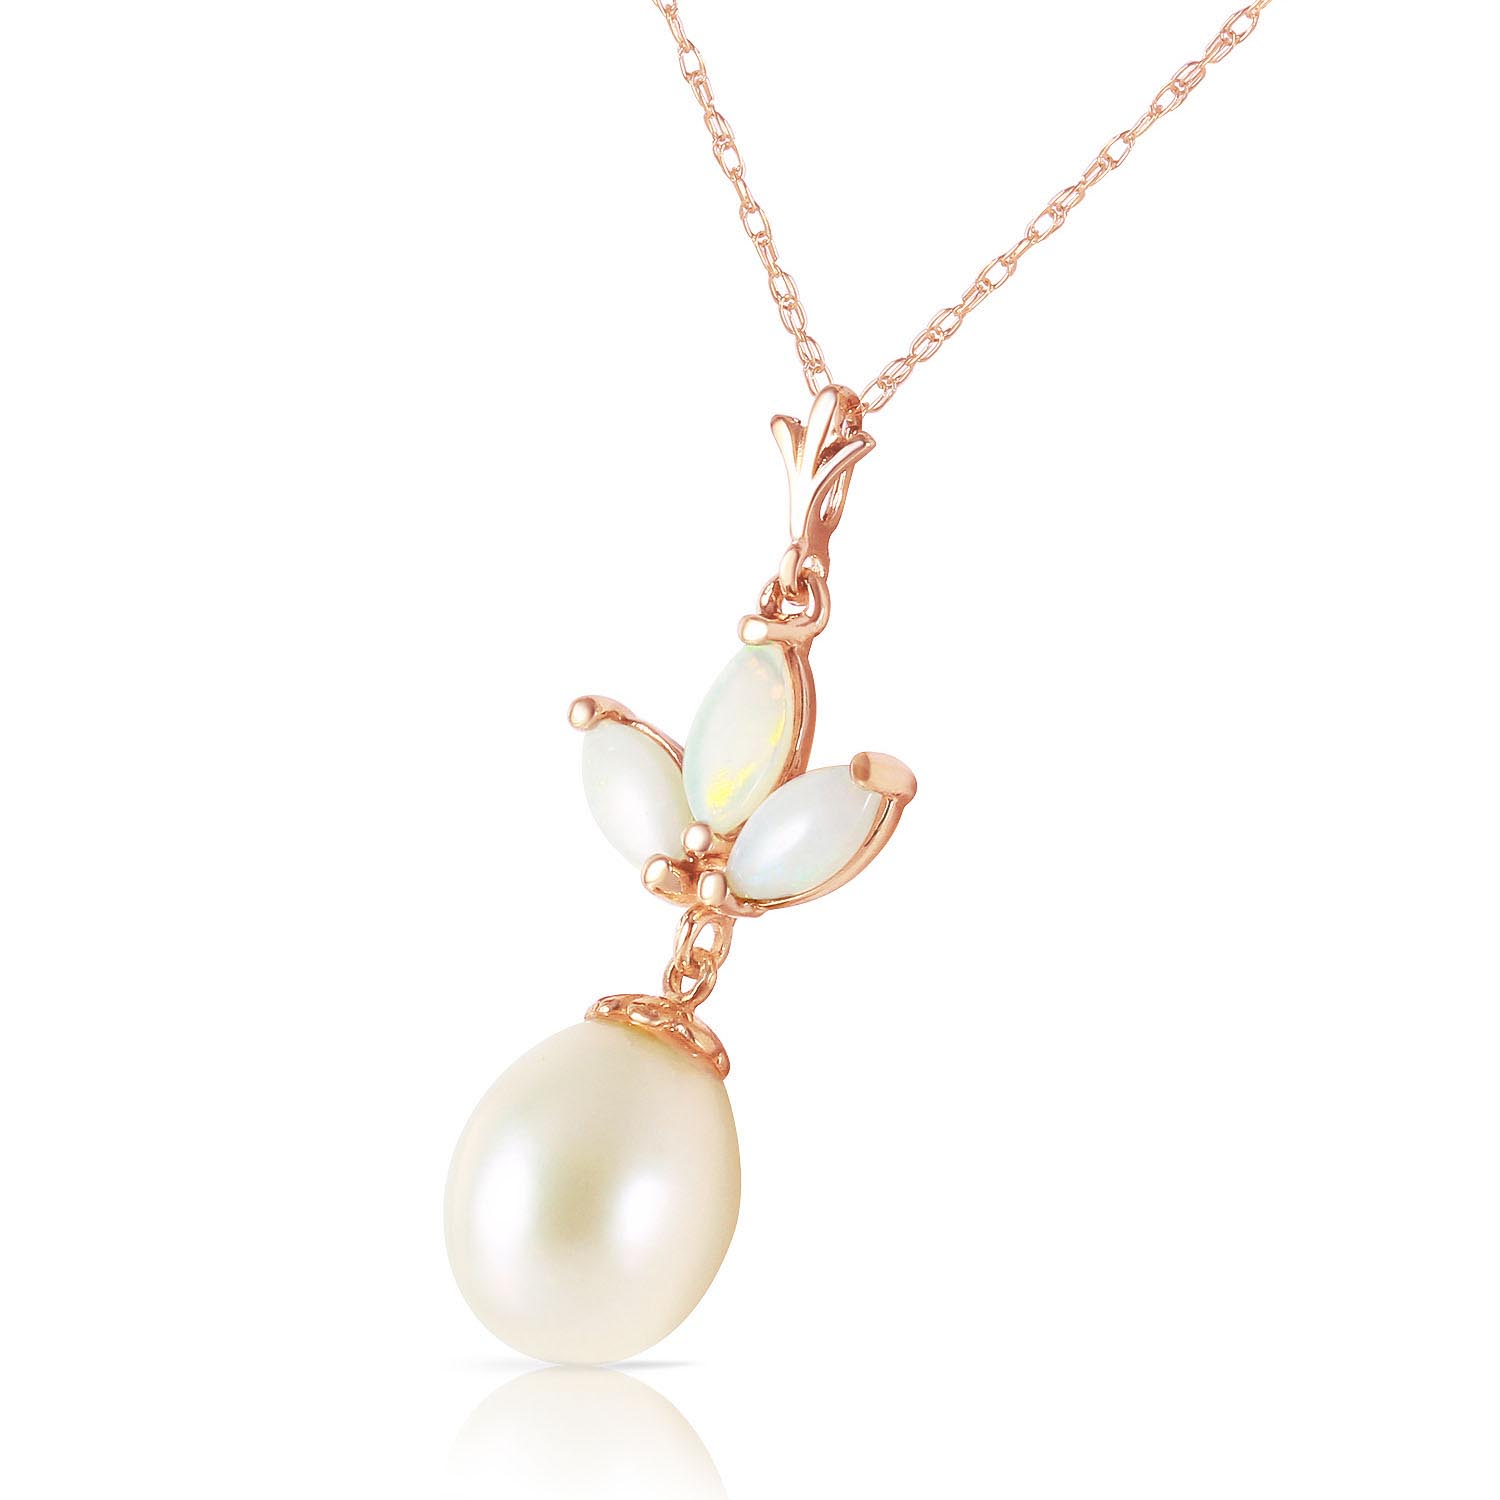 Pearl and Opal Petal Pendant Necklace 4.75ctw in 14K Rose Gold